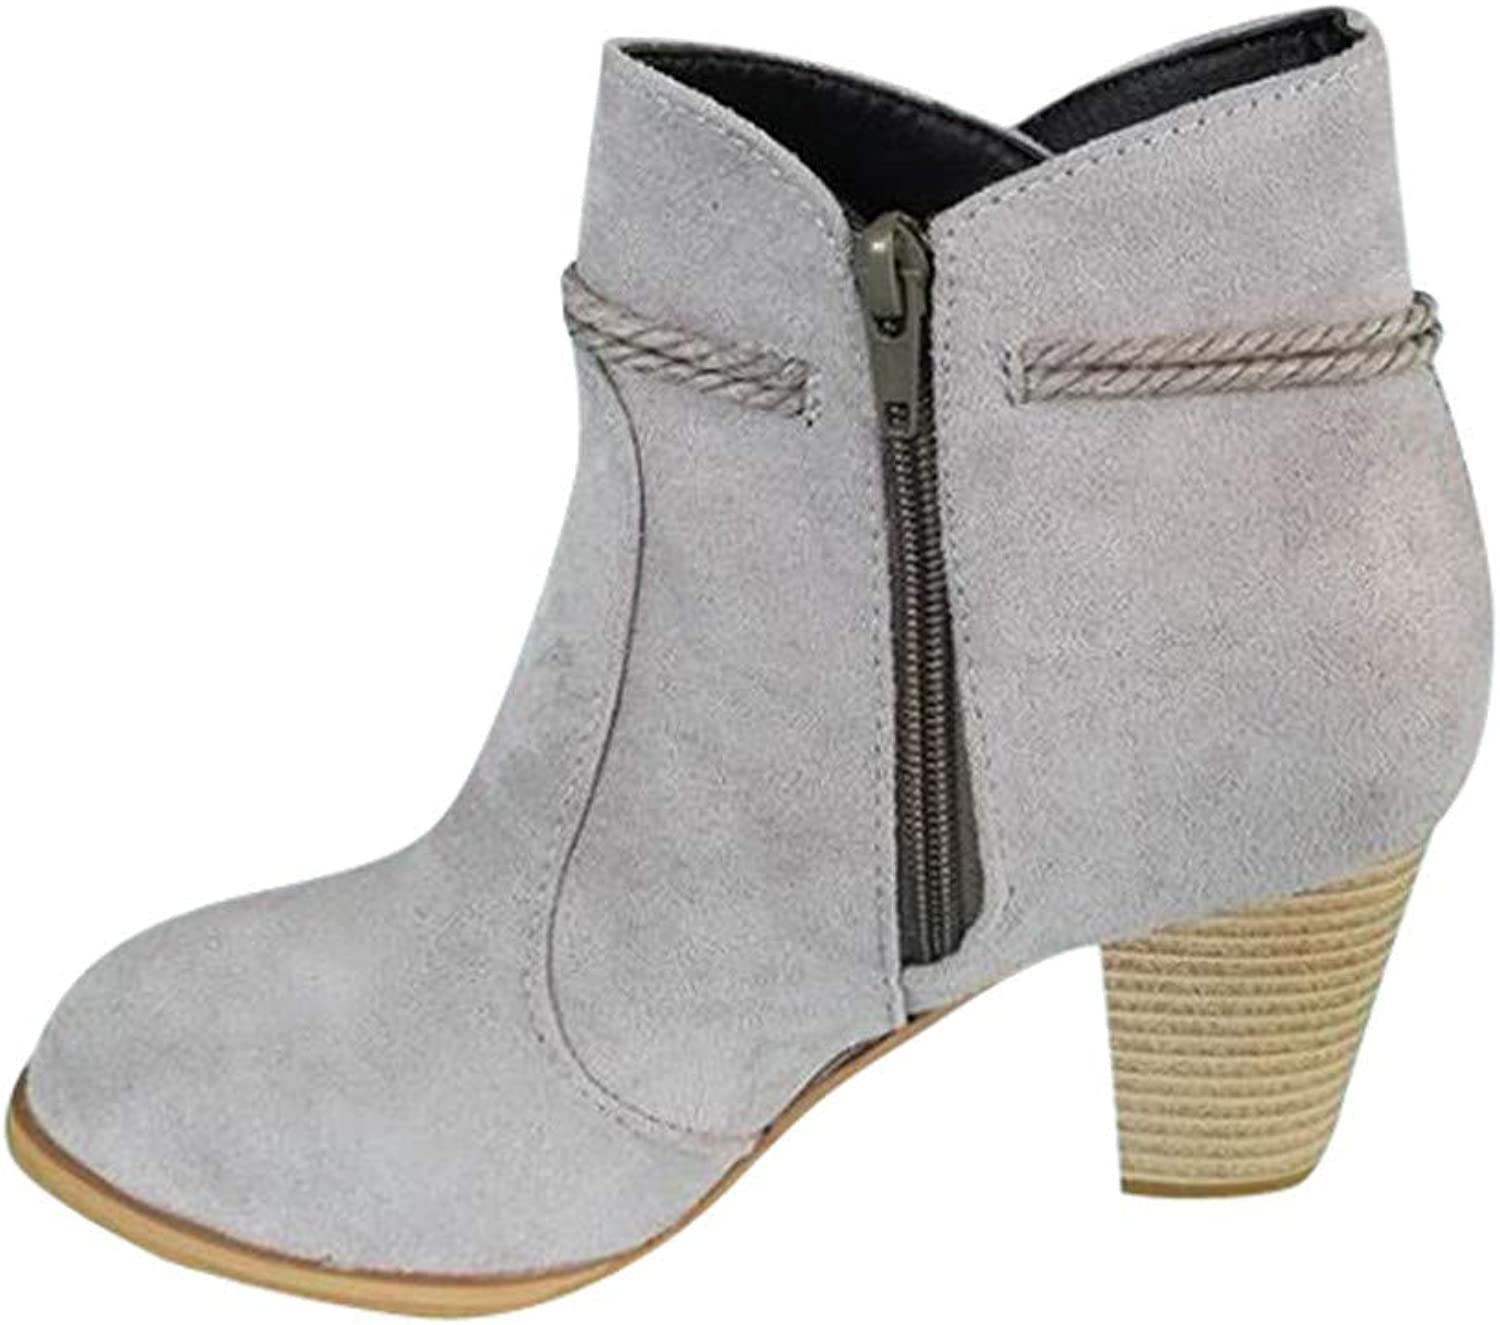 LIKESIDE Fashion Women Round Toe High Thick Ankle Boots Side Zipper Tassel Ankle Boots